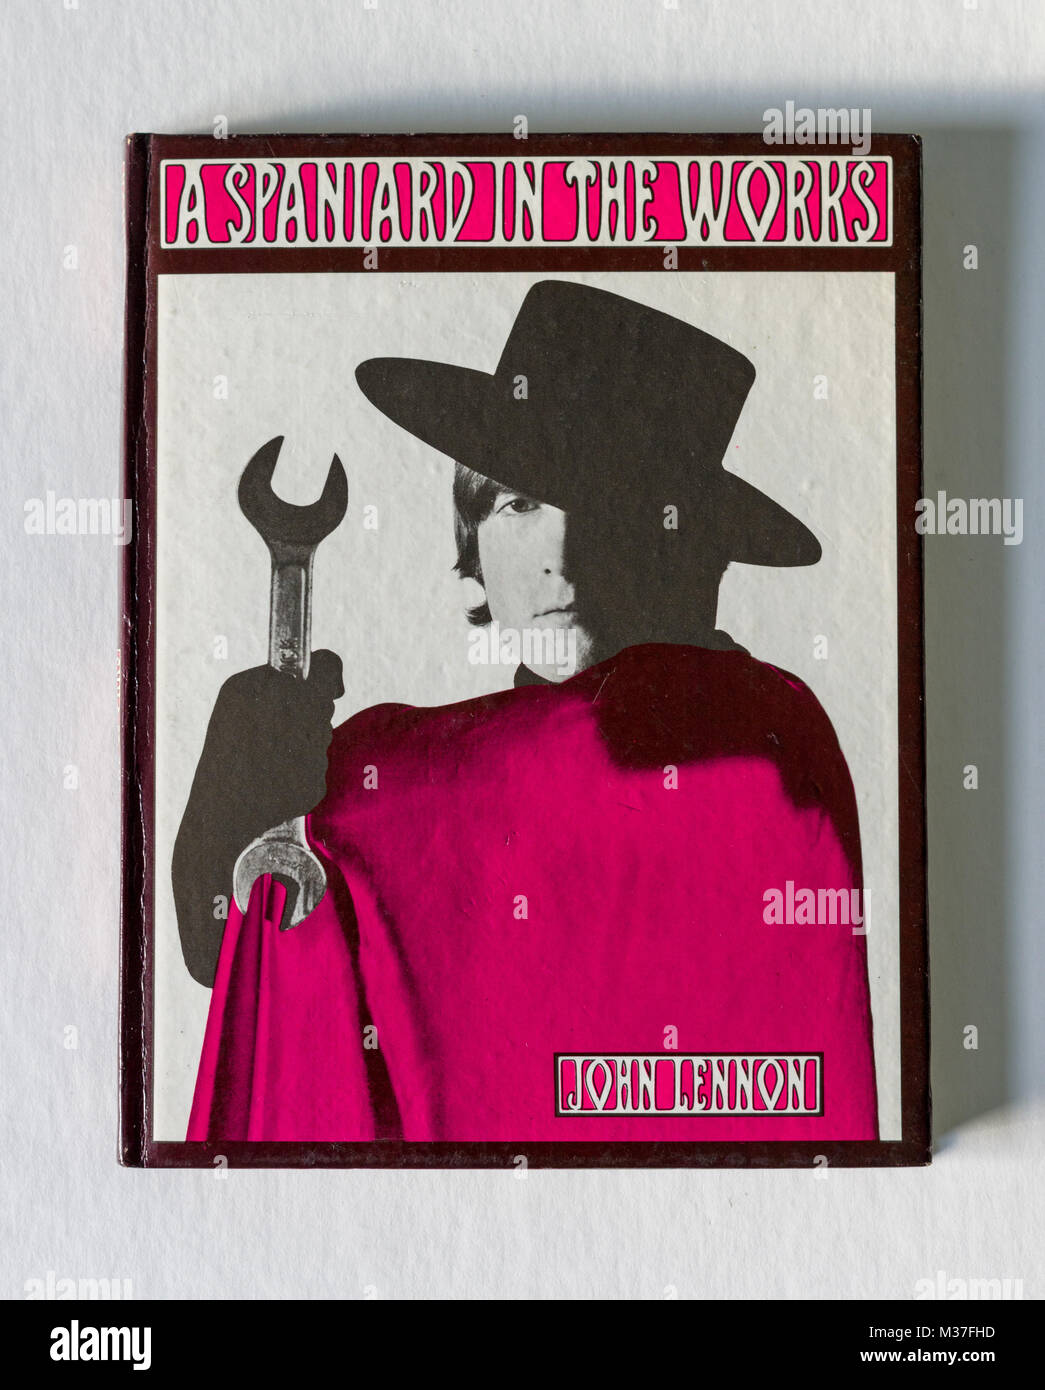 A Spaniard In The Works, a book by Beatle John Lennon, published in 1965, consisting  of whimsical stories and drawings. - Stock Image